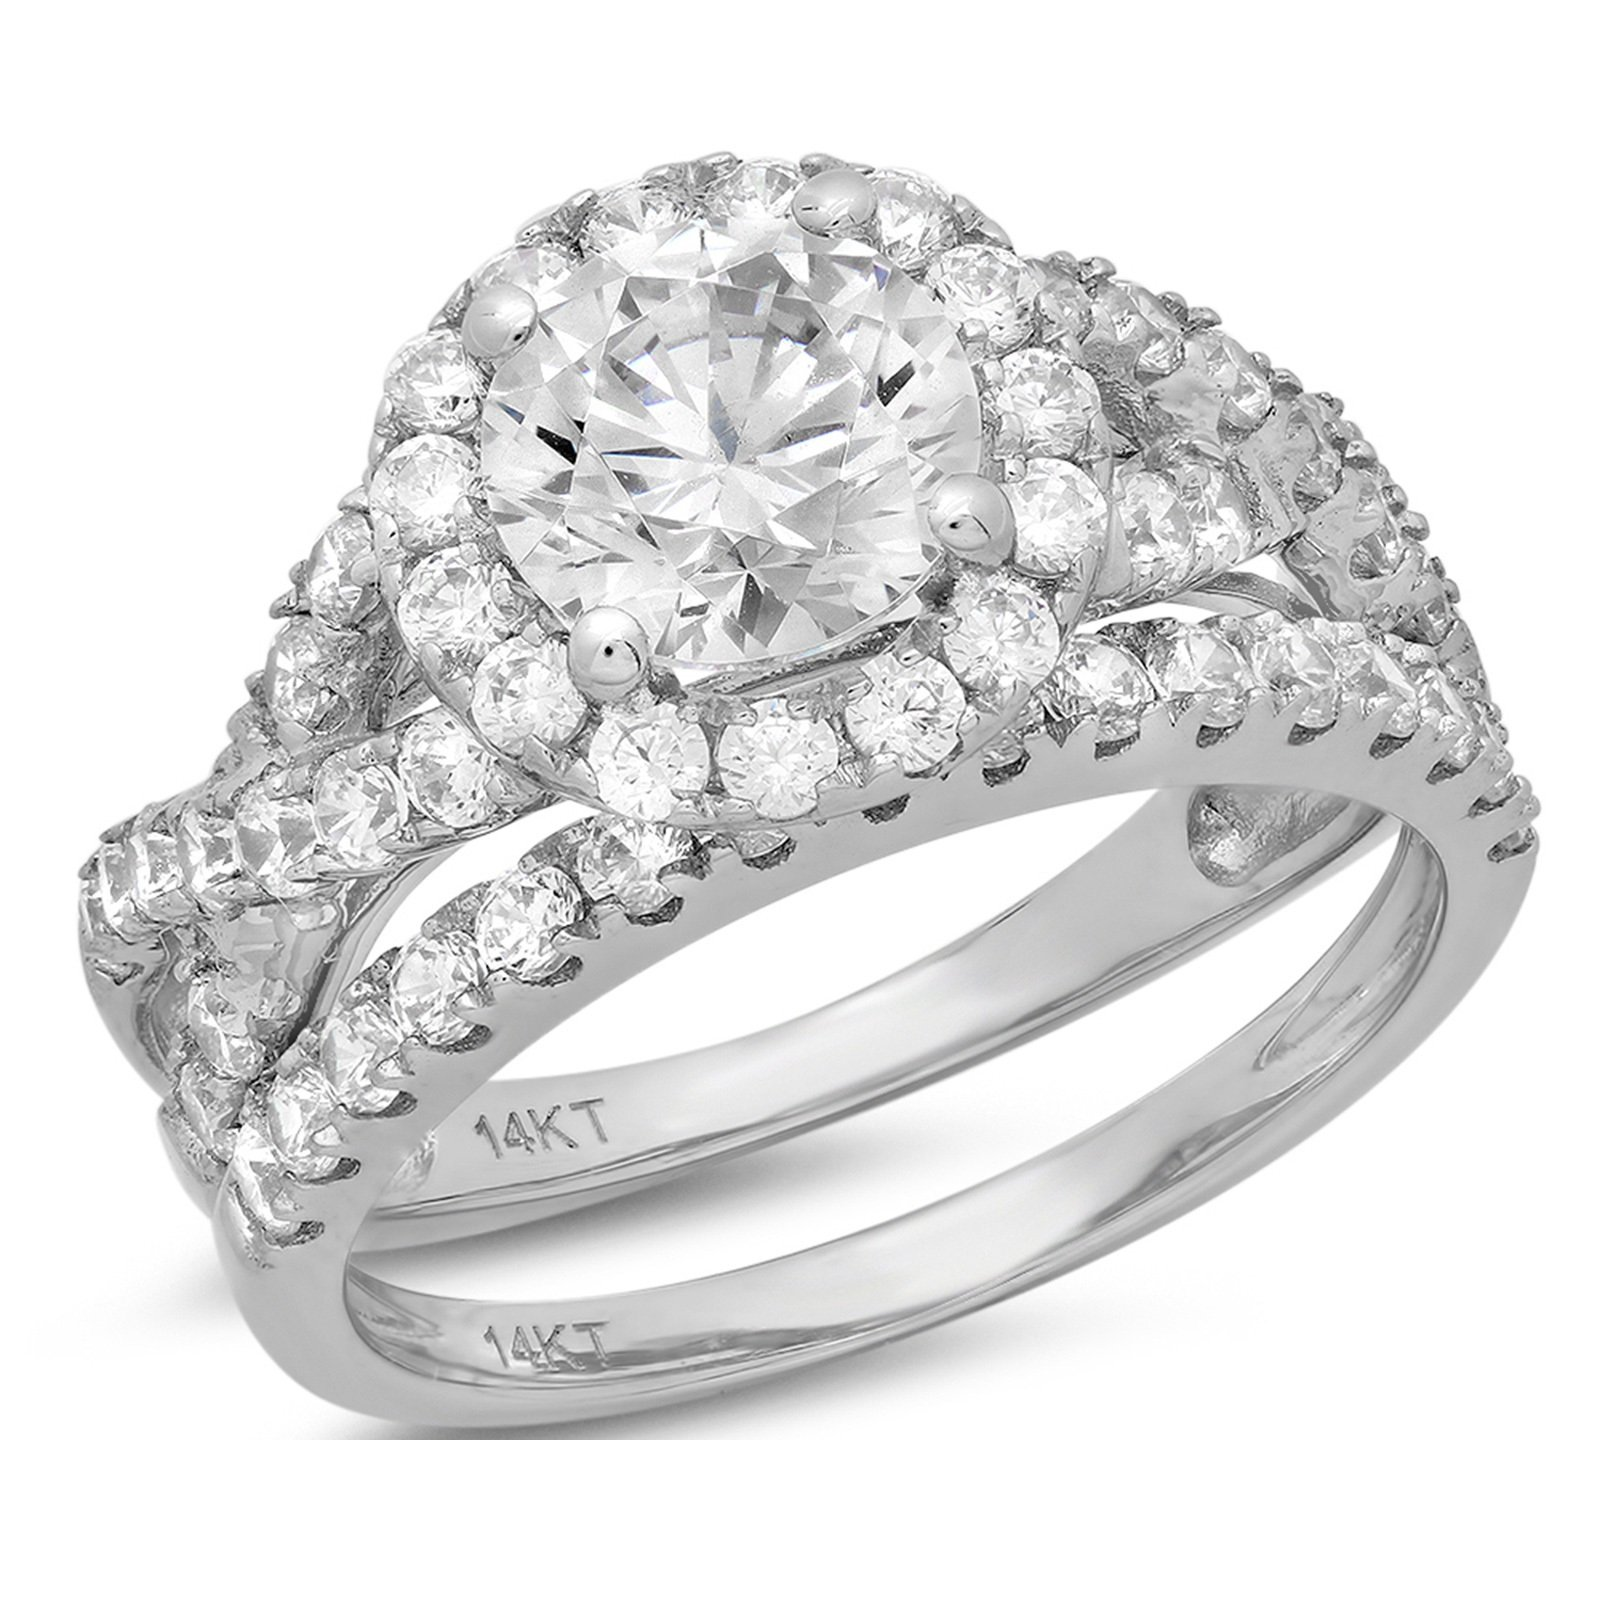 Clara Pucci 2.6 Ct Round Cut Pave Halo Engagement Wedding Bridal Anniversary Ring Band Set 14K White Gold, Size 6.5